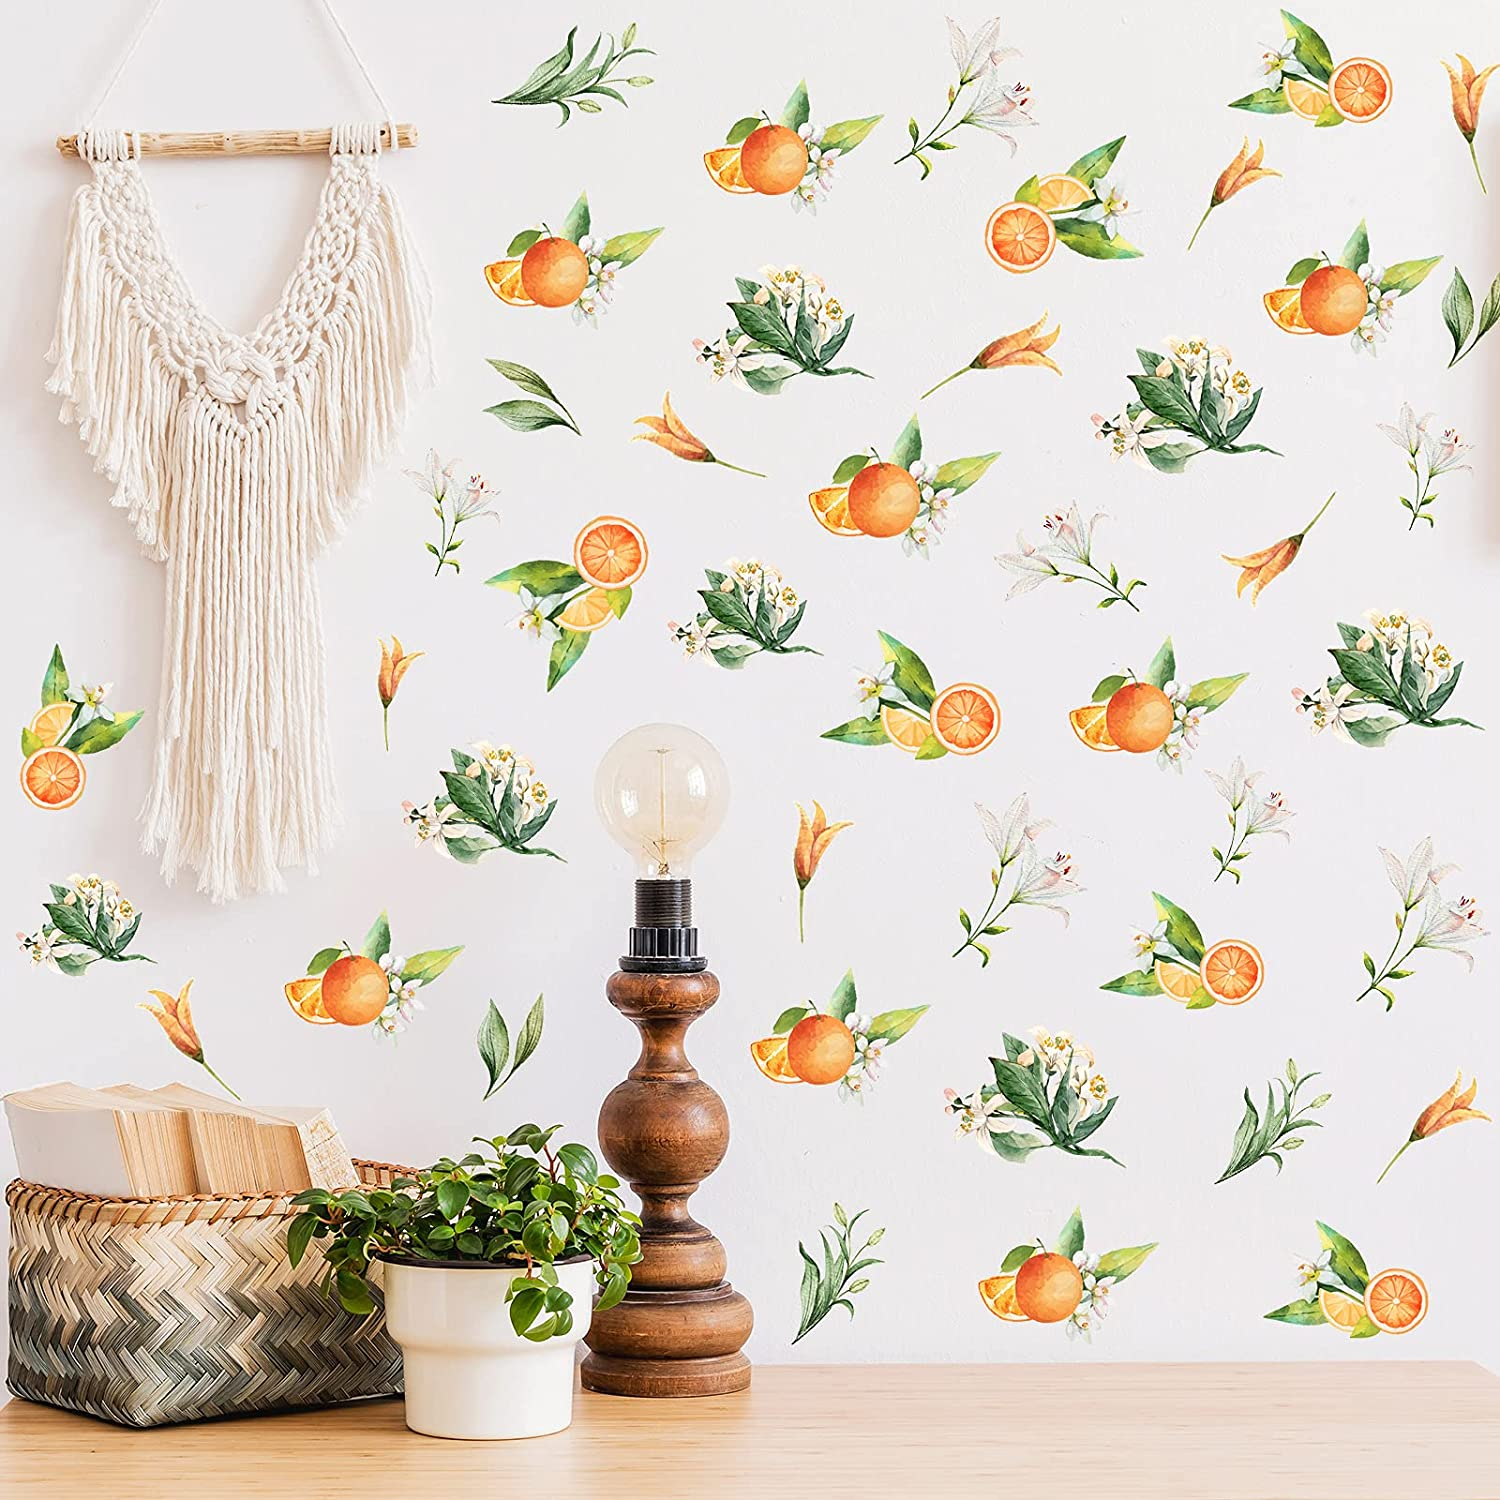 70 Pieces Nordic Tangerines Green Leaves Wall Decal Sticker Removable Fruit Plant Fresh Leaves Wall Decals Art DIY Vinyl Mural Wallpaper Home Decor for Kitchen Living Room Bedroom Kids Room